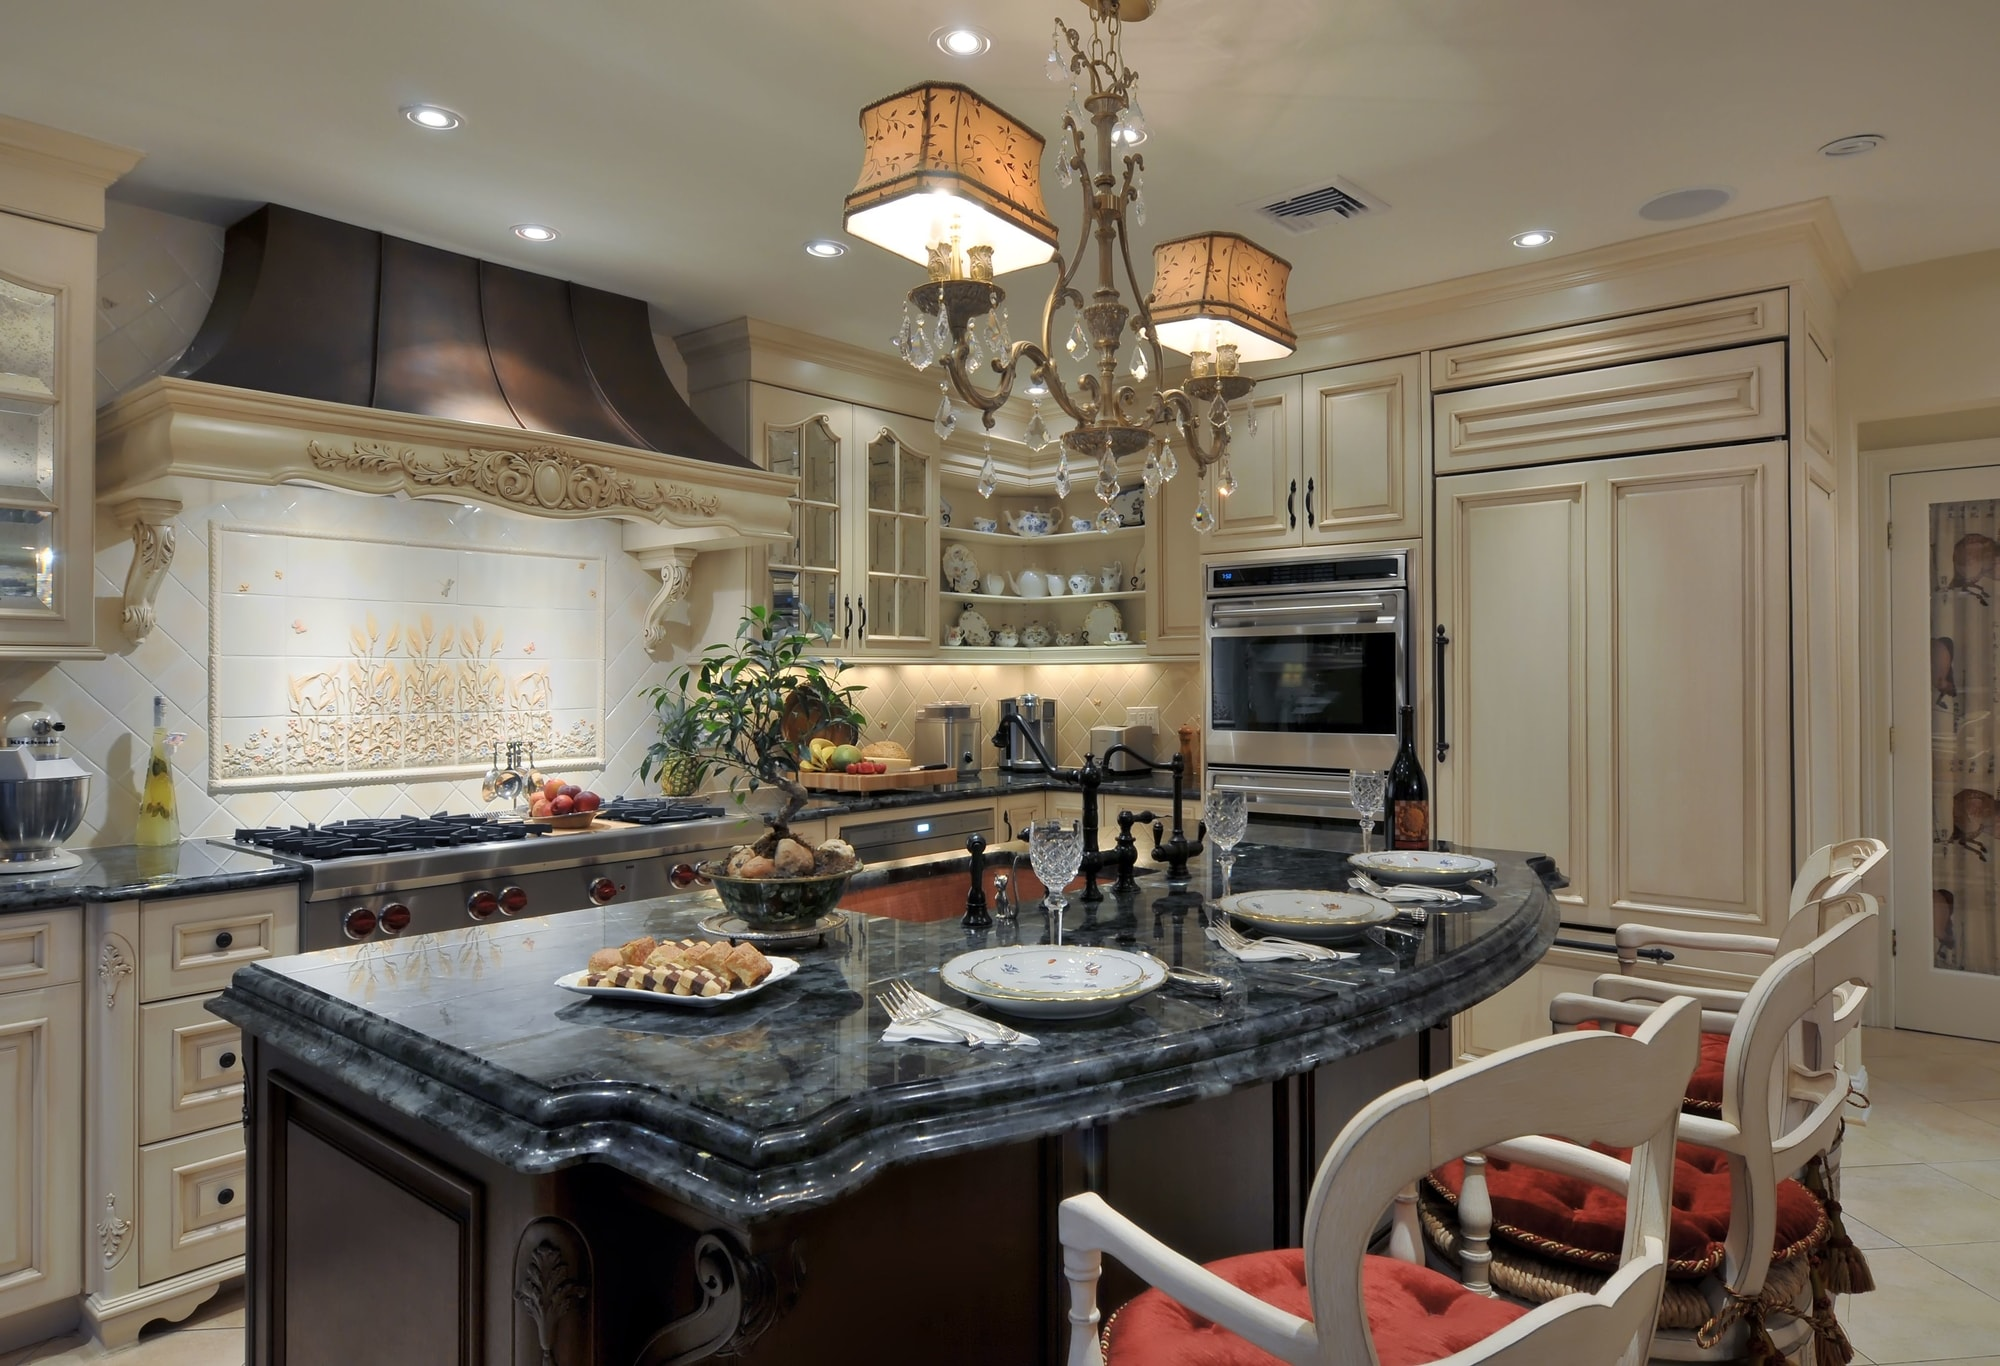 Traditional style kitchen with with dark marble countertop